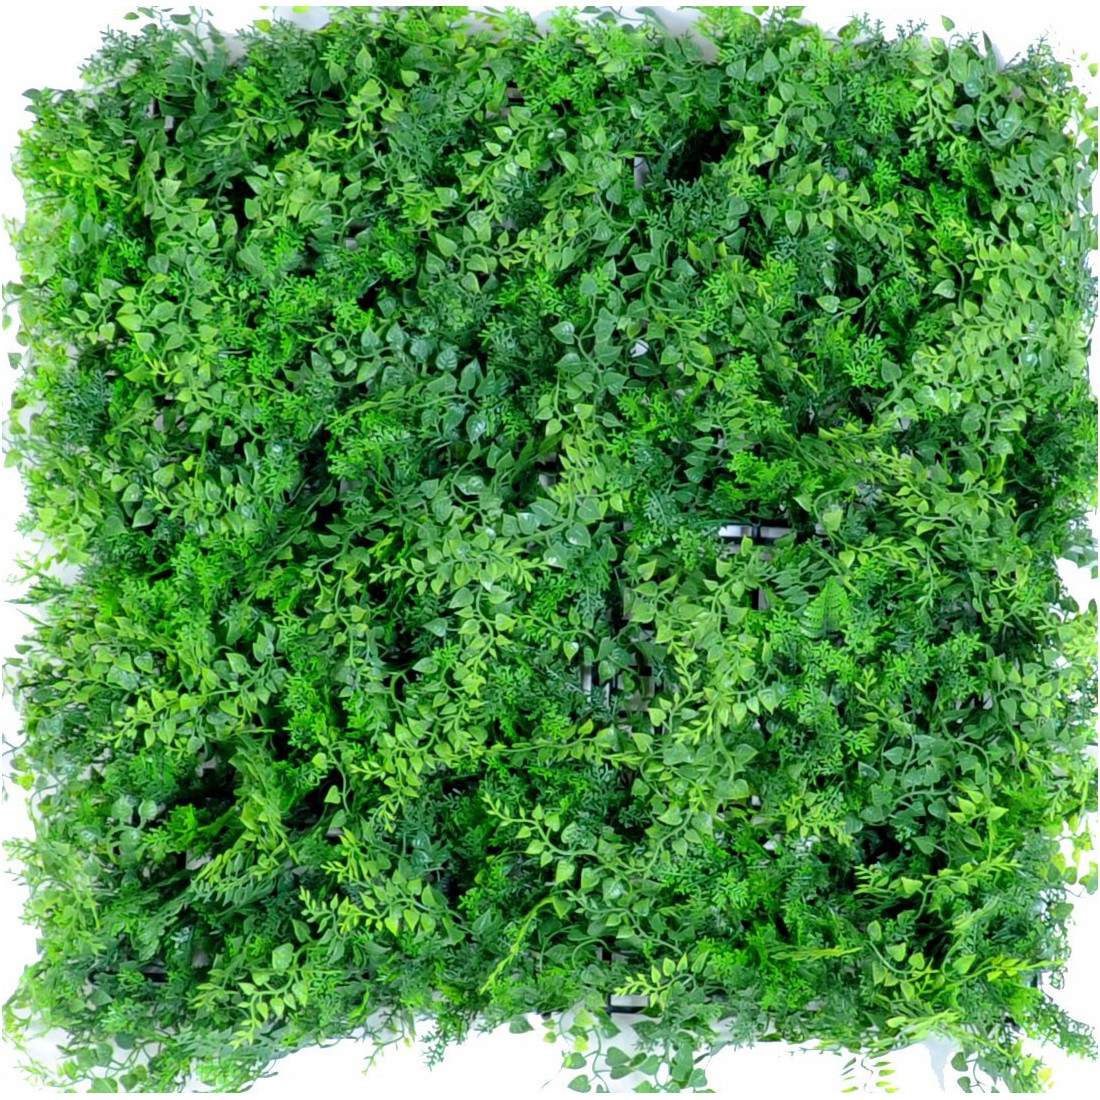 Mur fond foug re 50 x 50 cm plaques synth tique reflets for Mur vegetal exterieur synthetique